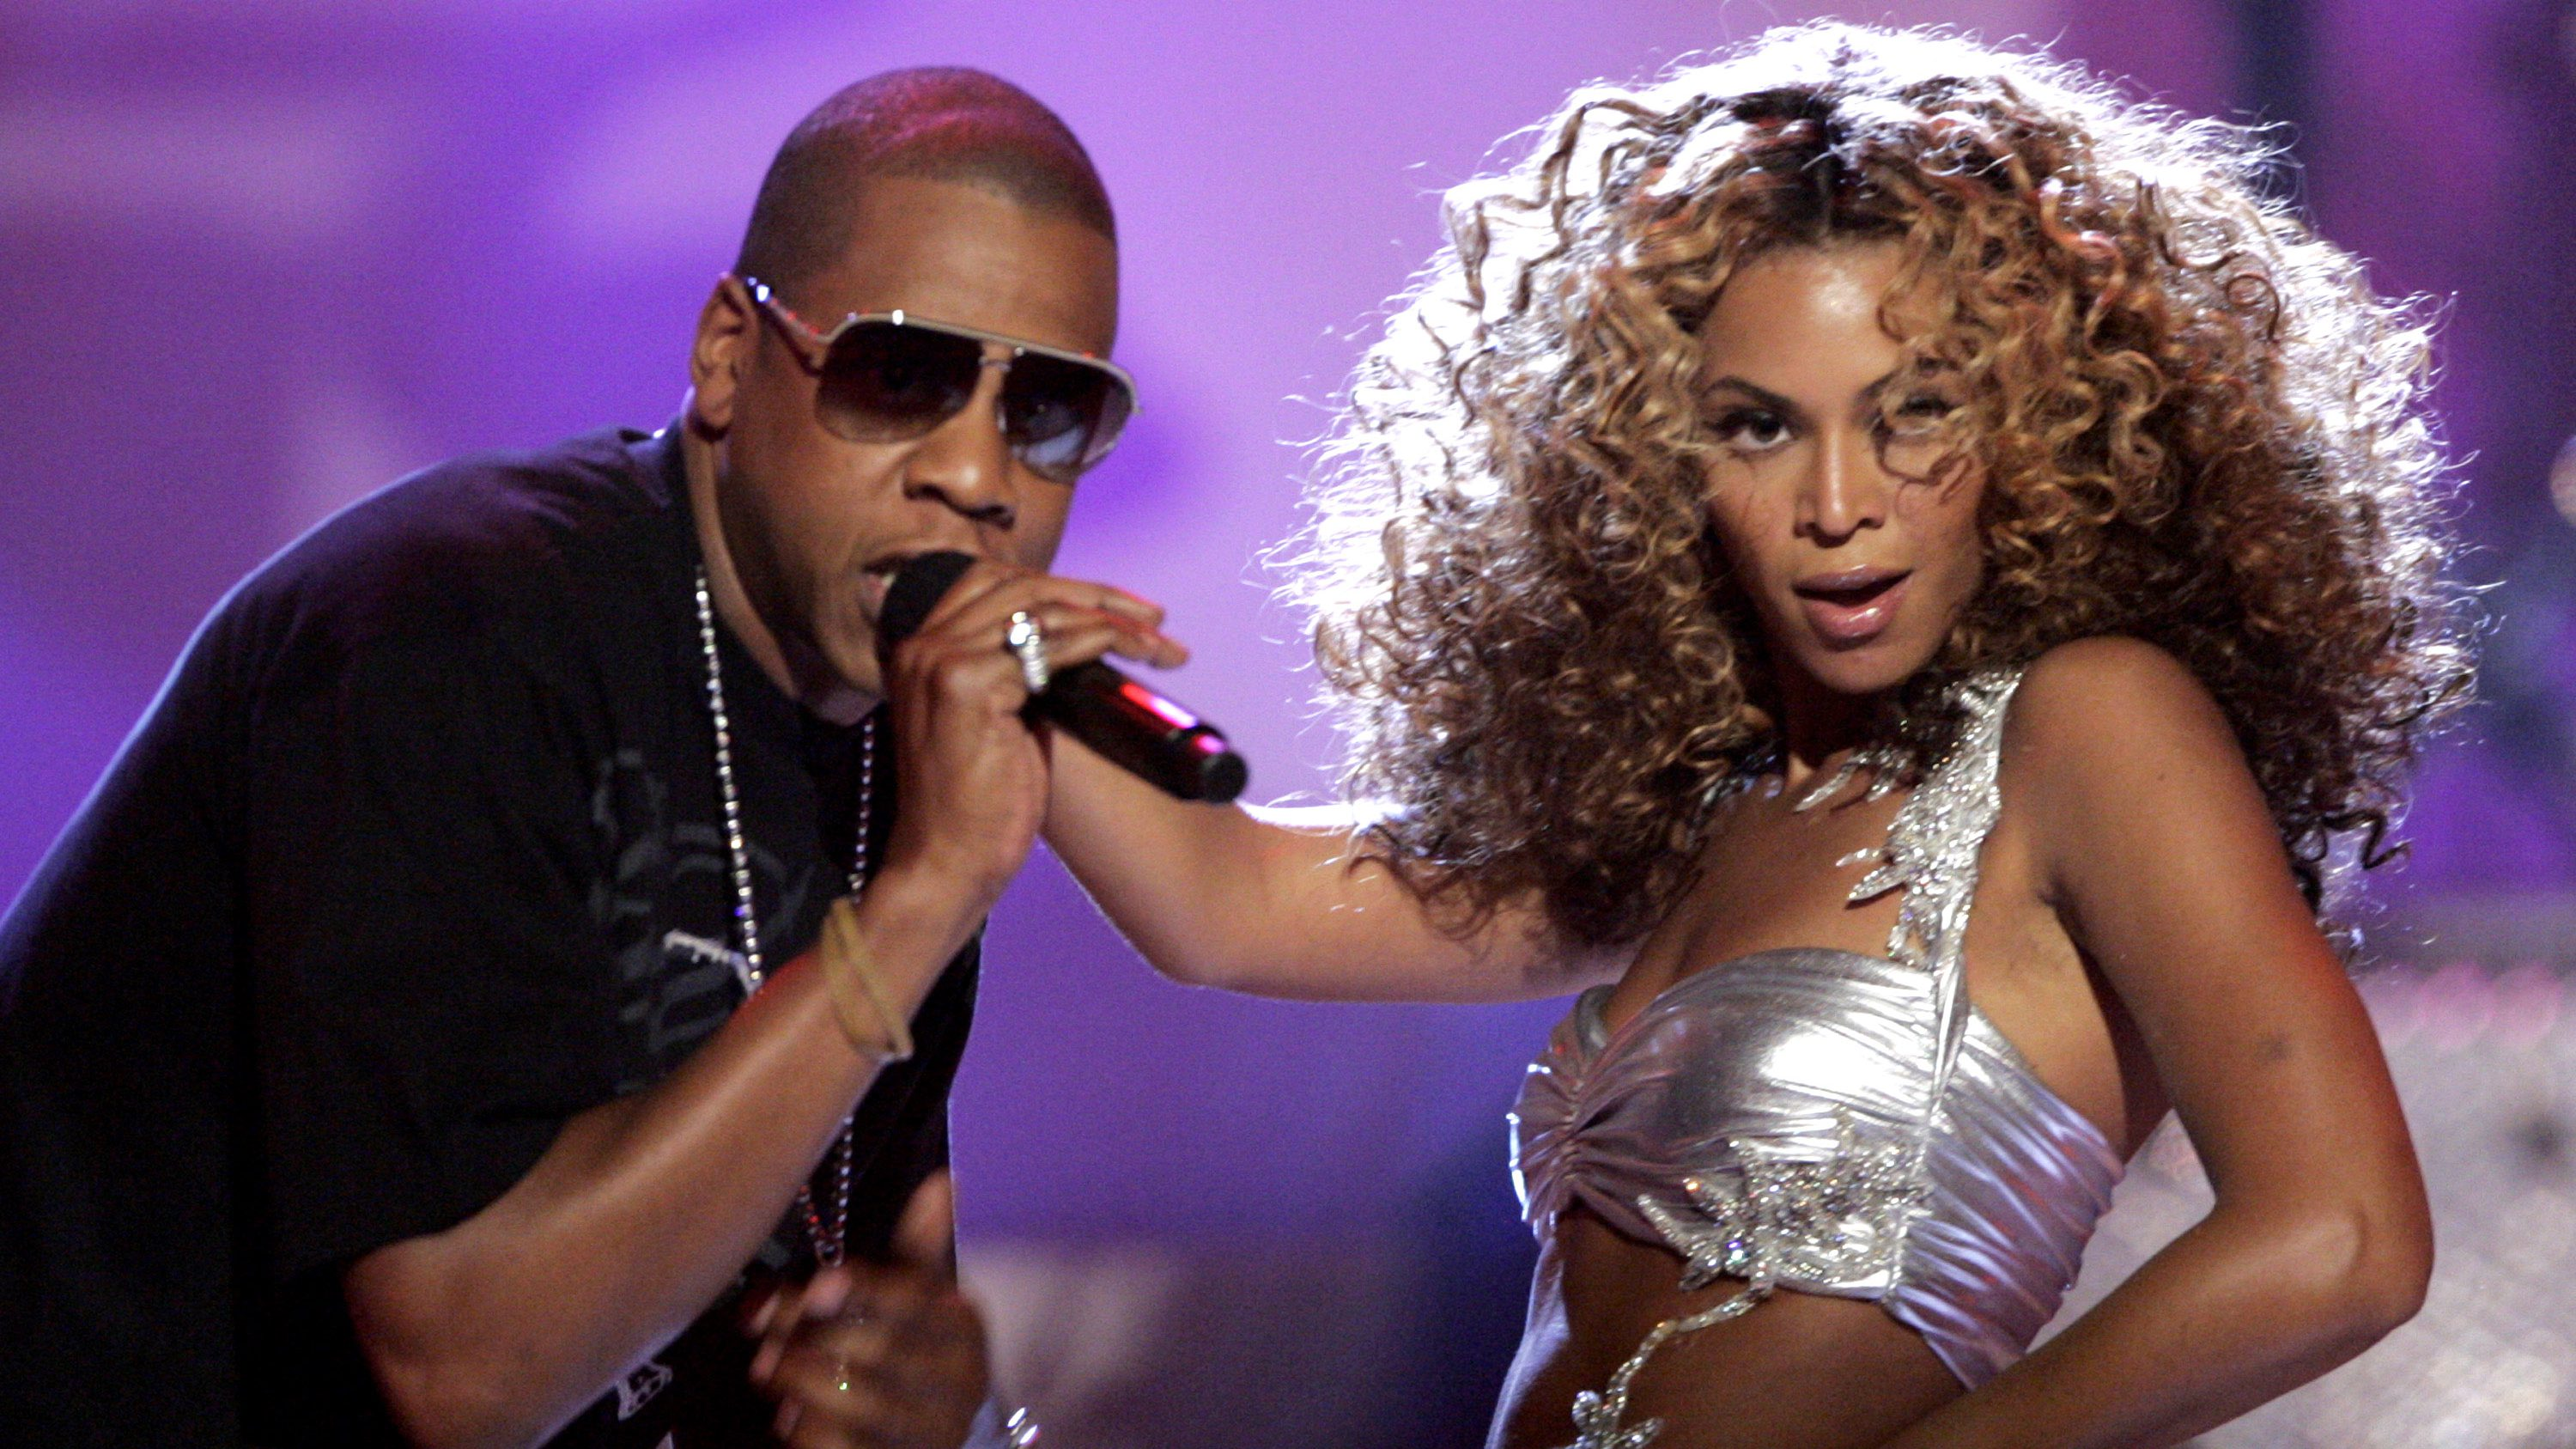 """R&B artist Beyonce (R) performs """"Deja vu"""" with rap artist Jay-Z at the 2006 BET Awards at the Shrine Auditorium in Los Angeles in June 27, 2006 file photo. A new crop of rappers want to emulate the success of rappers-turned-moguls like former New York drug dealers Jay-Z and 50 Cent, who both sold albums based on their transformations from street hustling to popping champagne."""